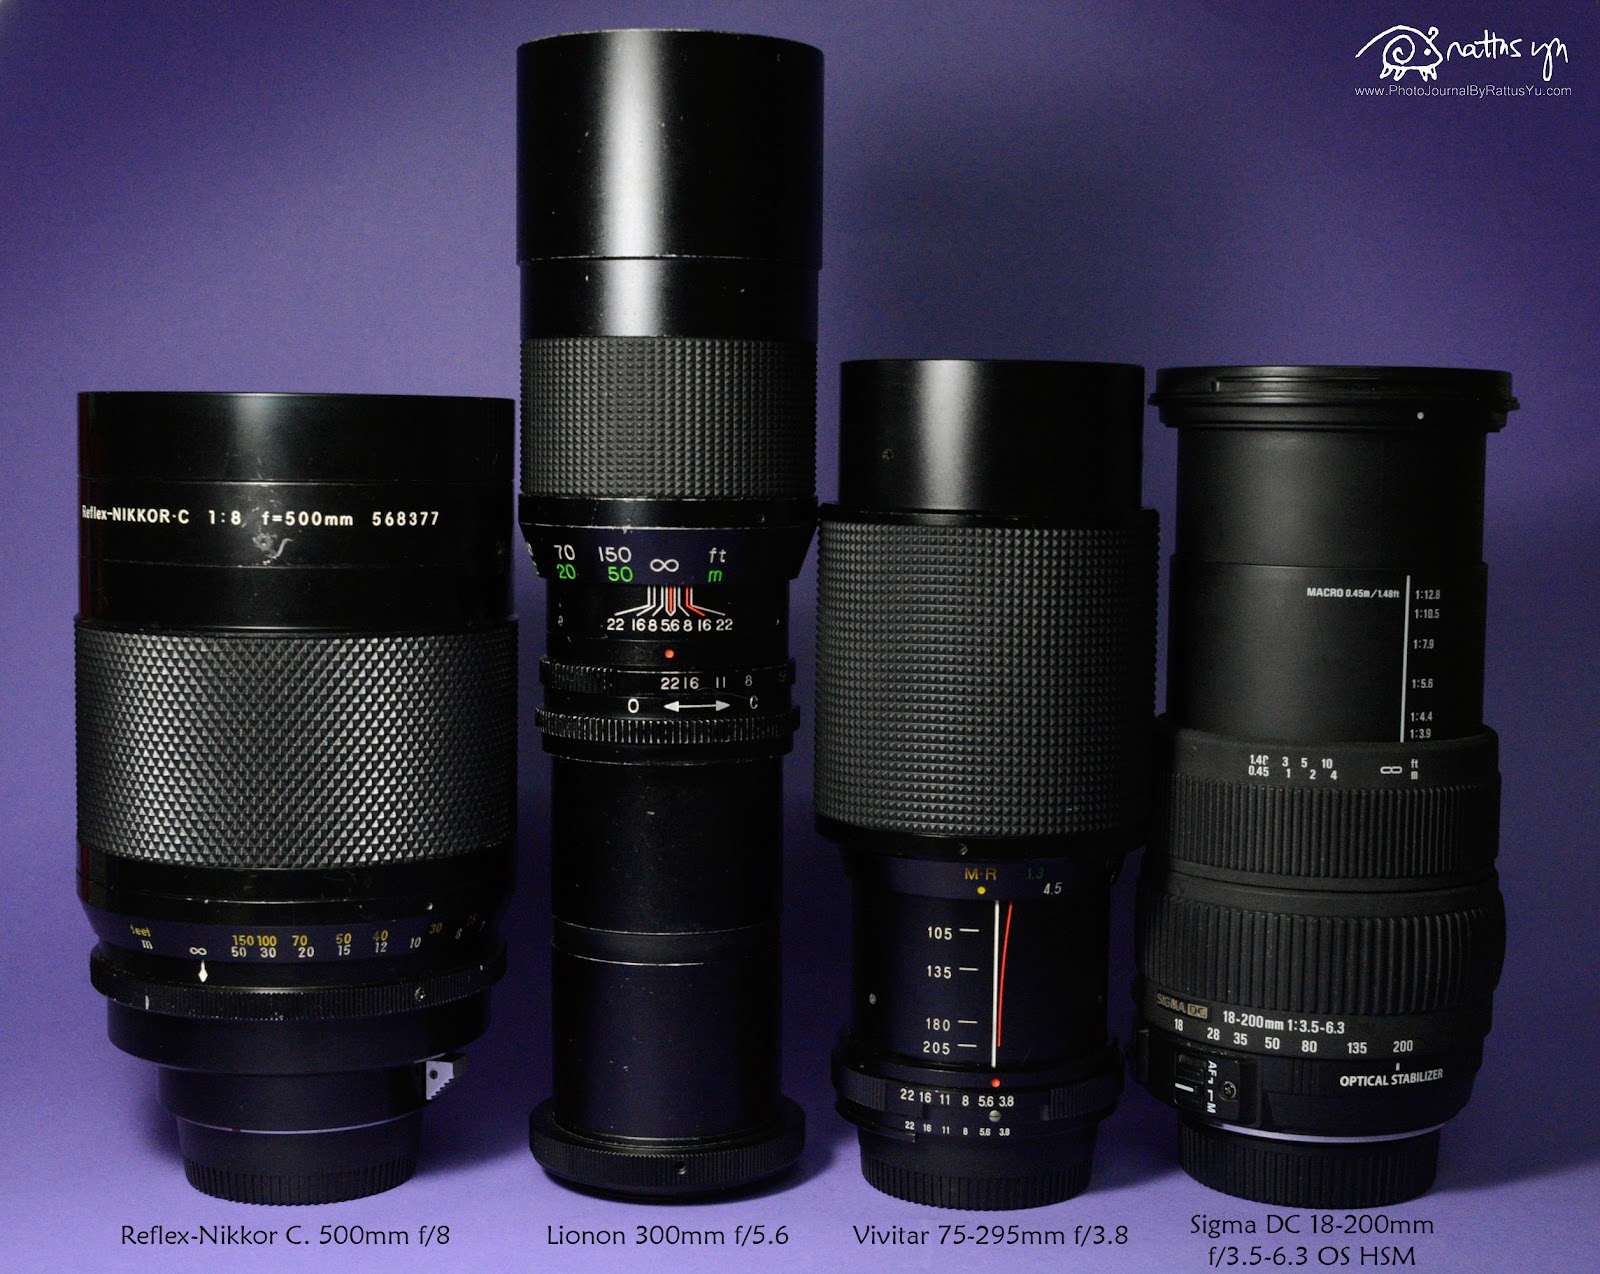 Sigma DC 18-200mm f/3.5-6.3 Macro OS HSM (Launched 2007, for Nikon)